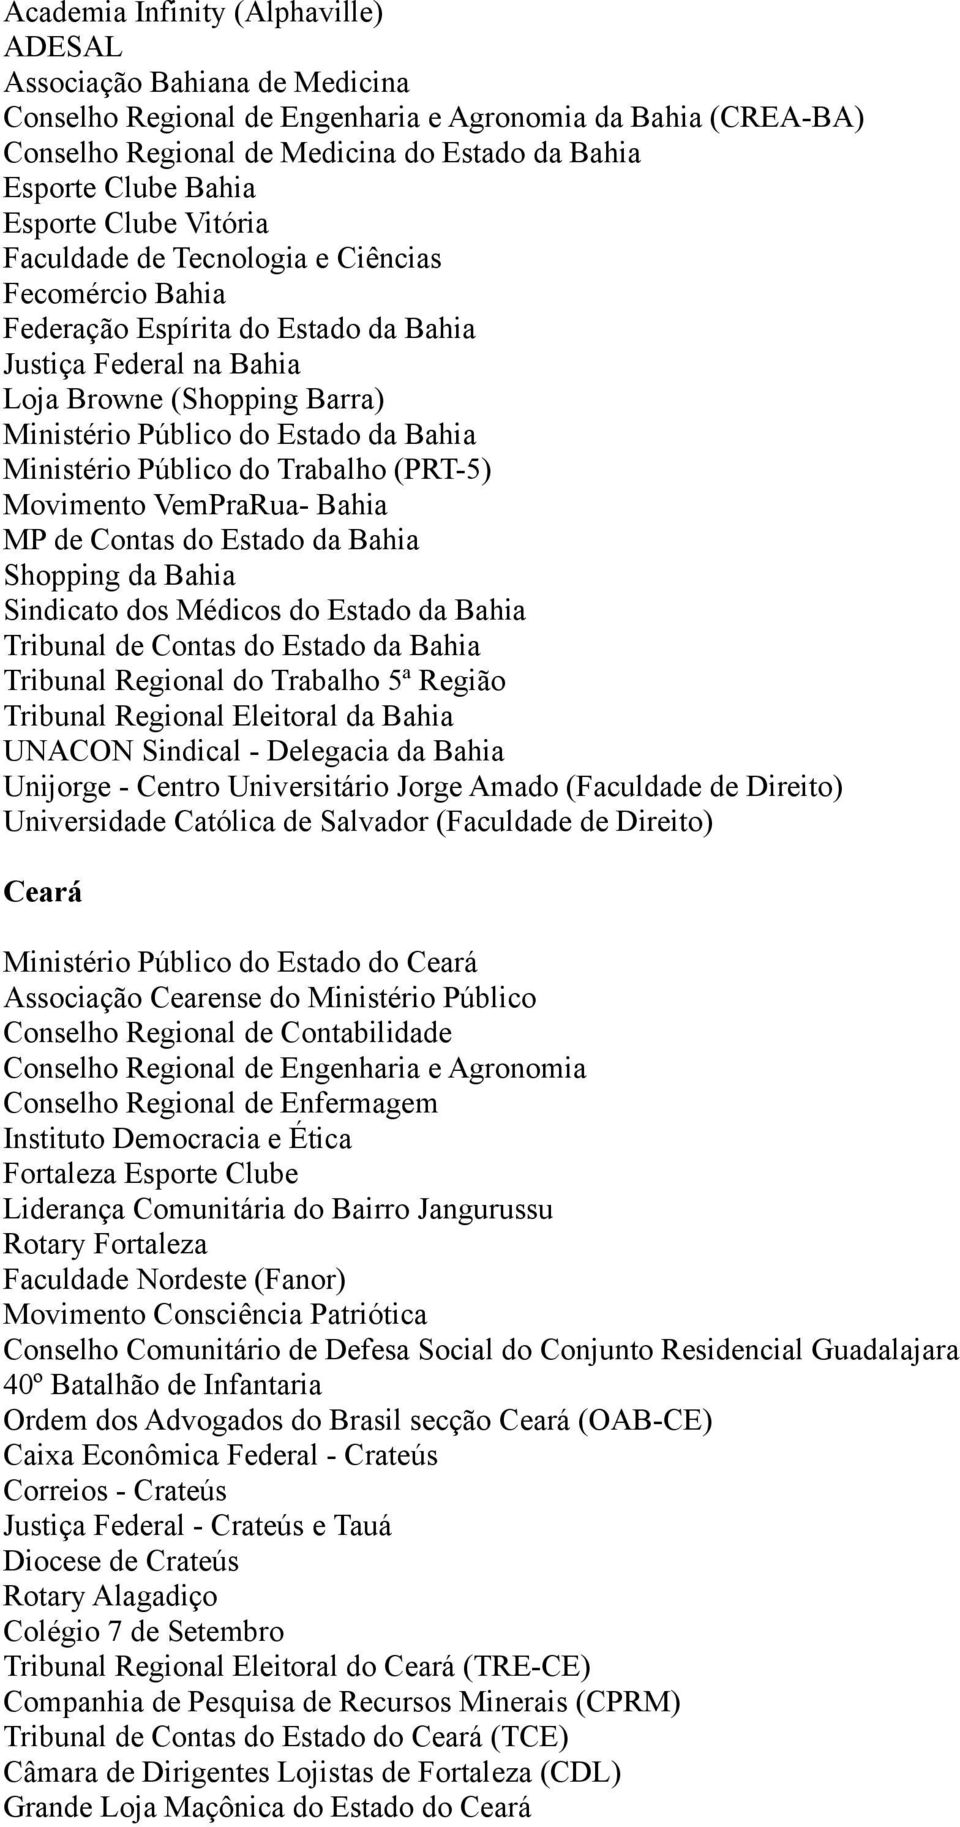 Estado da Bahia Ministério Público do Trabalho (PRT-5) Movimento VemPraRua- Bahia MP de Contas do Estado da Bahia Shopping da Bahia Sindicato dos Médicos do Estado da Bahia Tribunal de Contas do